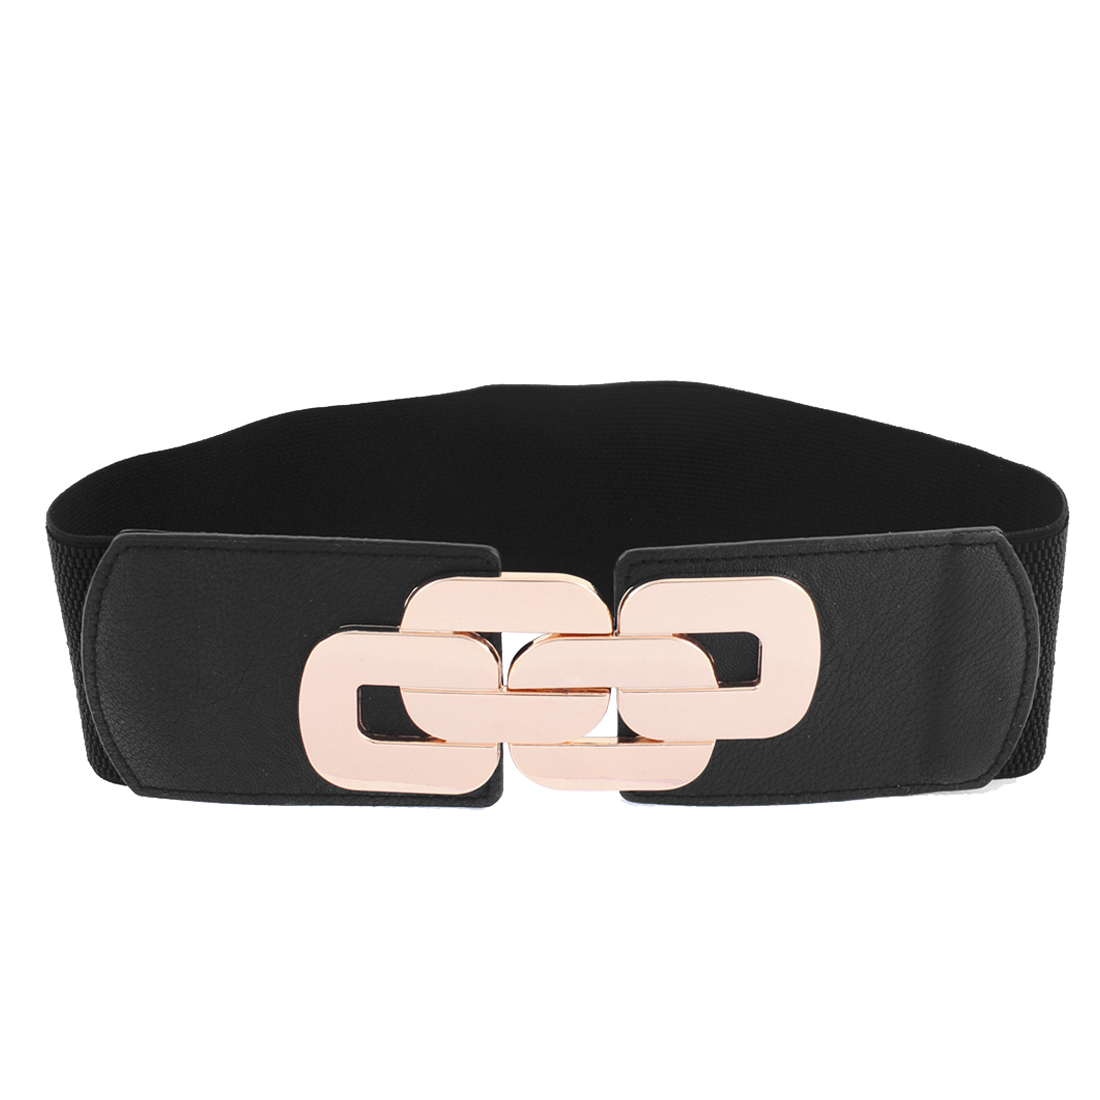 Black Elastic Fabric Interlocking Buckle Belt for Lady